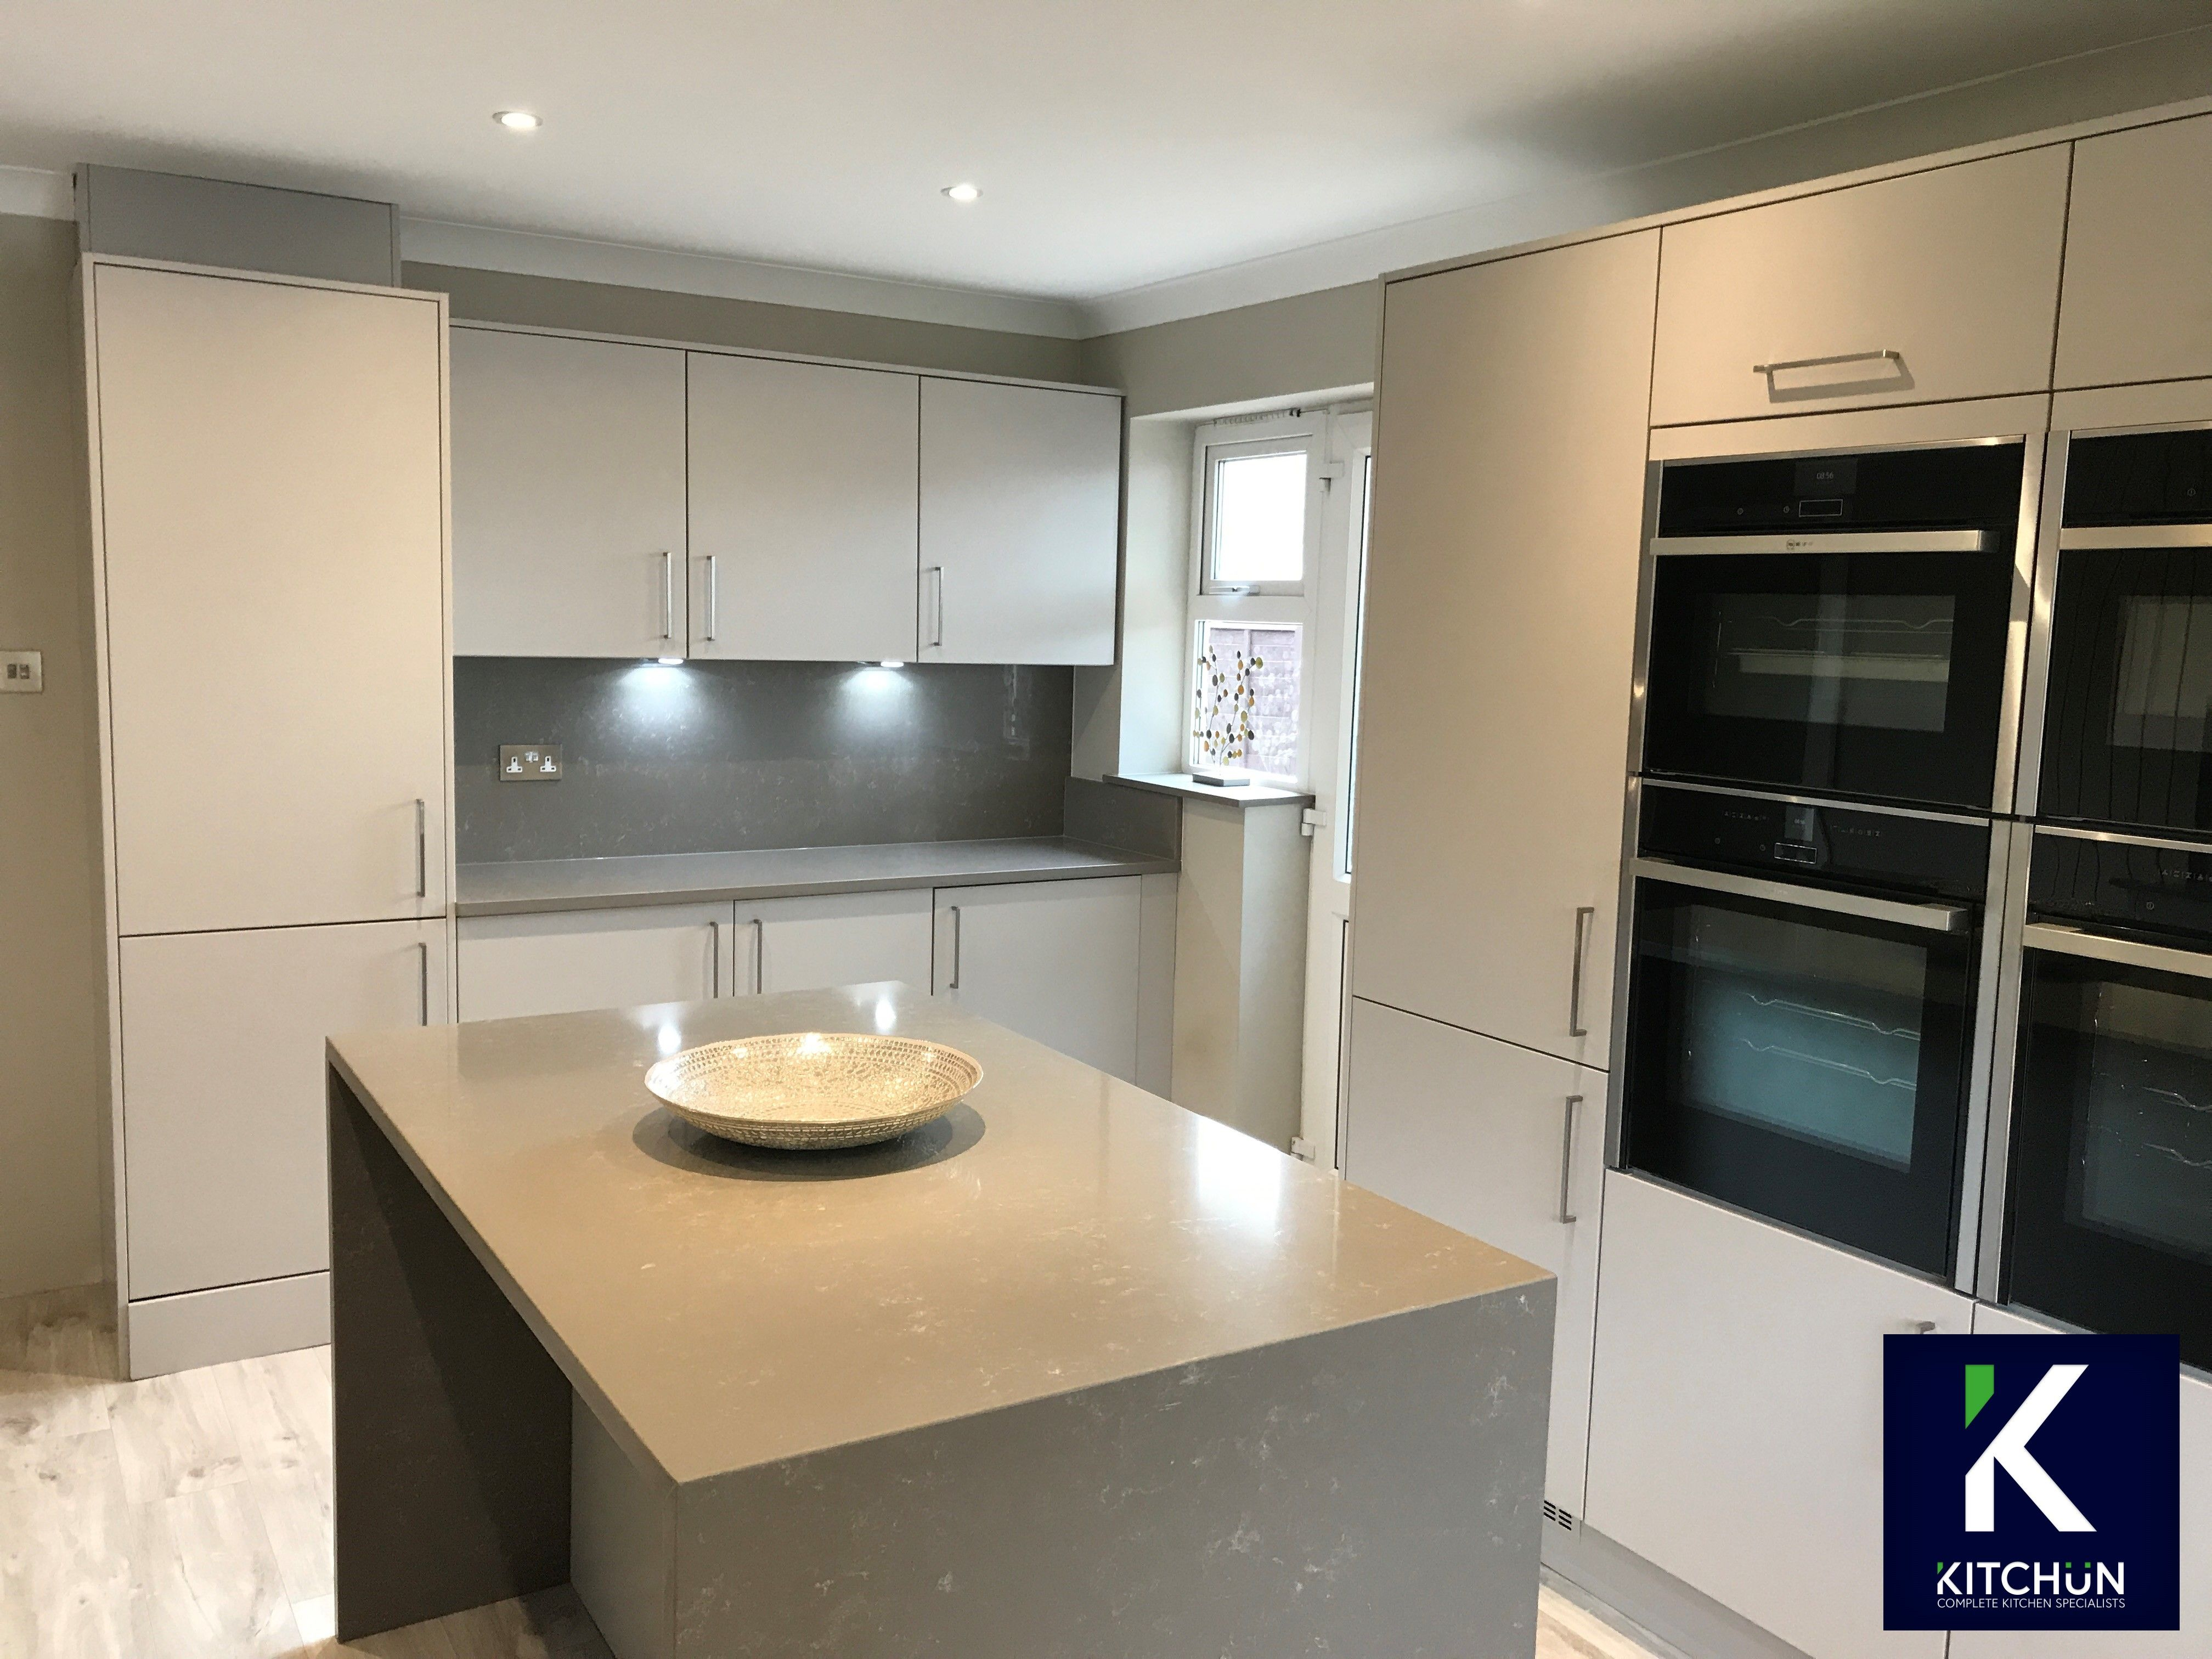 Kitchun supplied this stunning Second Nature Kitchens Porter